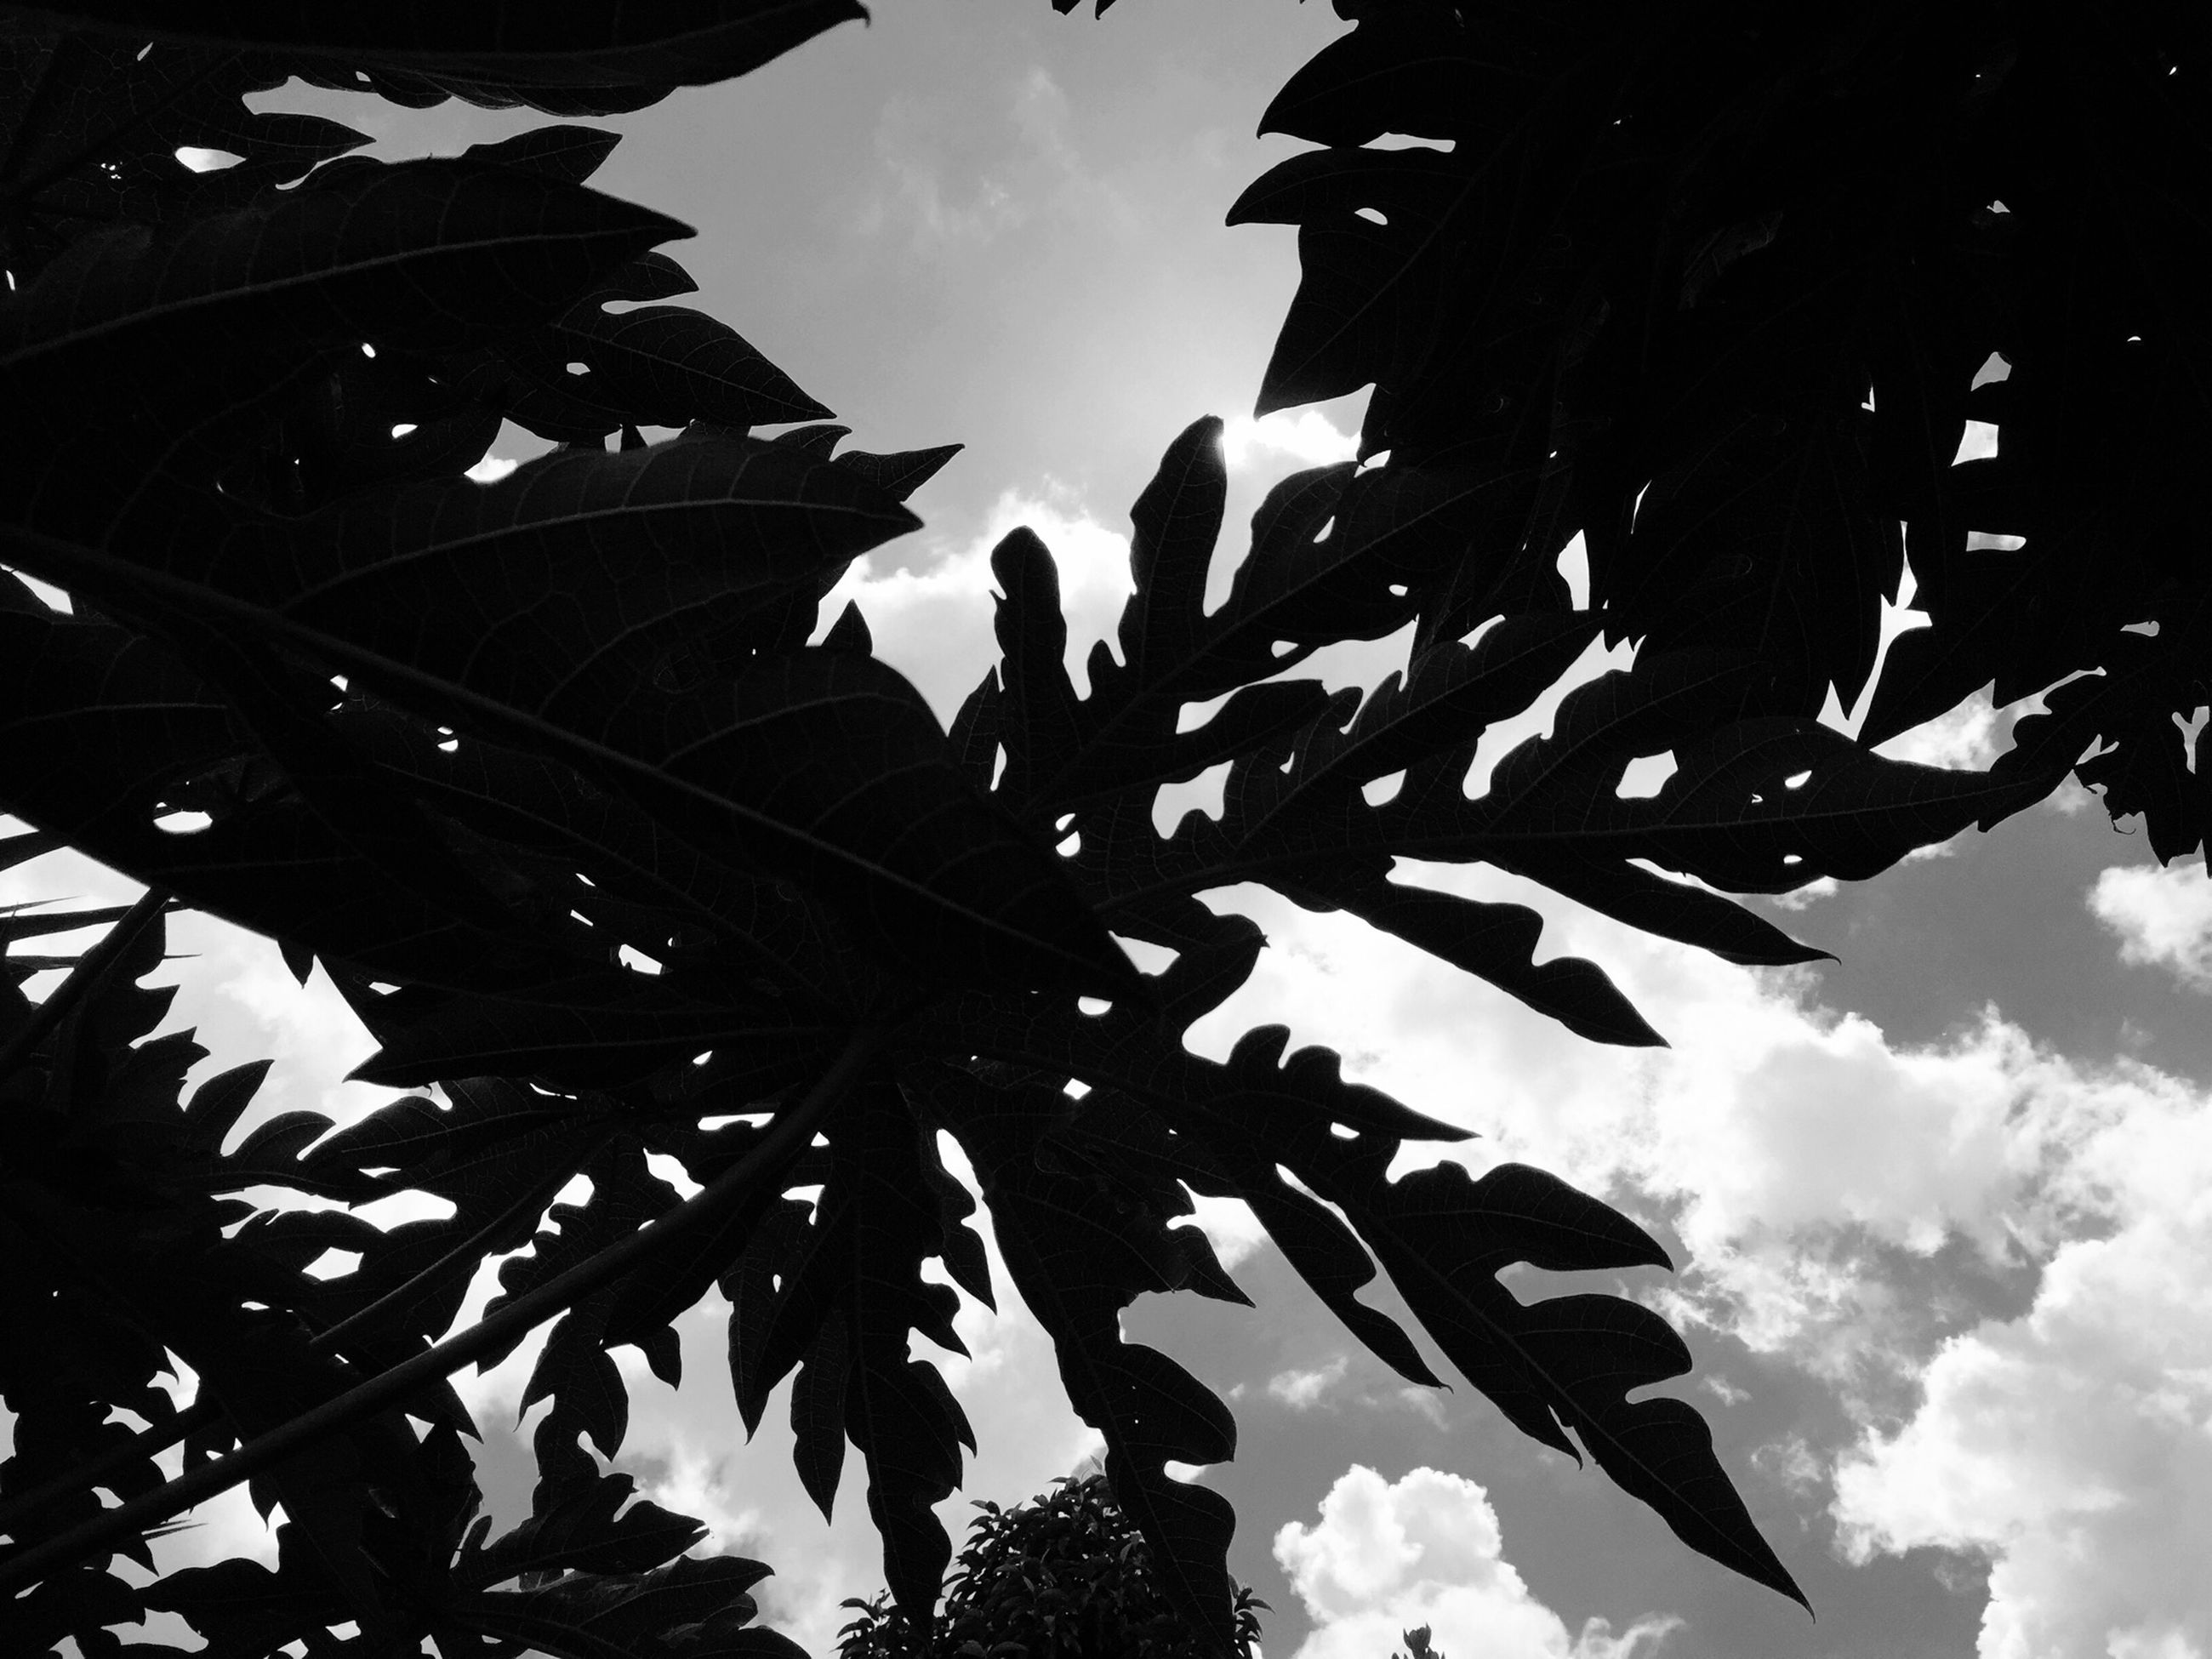 low angle view, sky, leaf, cloud - sky, growth, tree, cloudy, nature, branch, cloud, day, outdoors, building exterior, built structure, leaves, architecture, no people, sunlight, close-up, beauty in nature